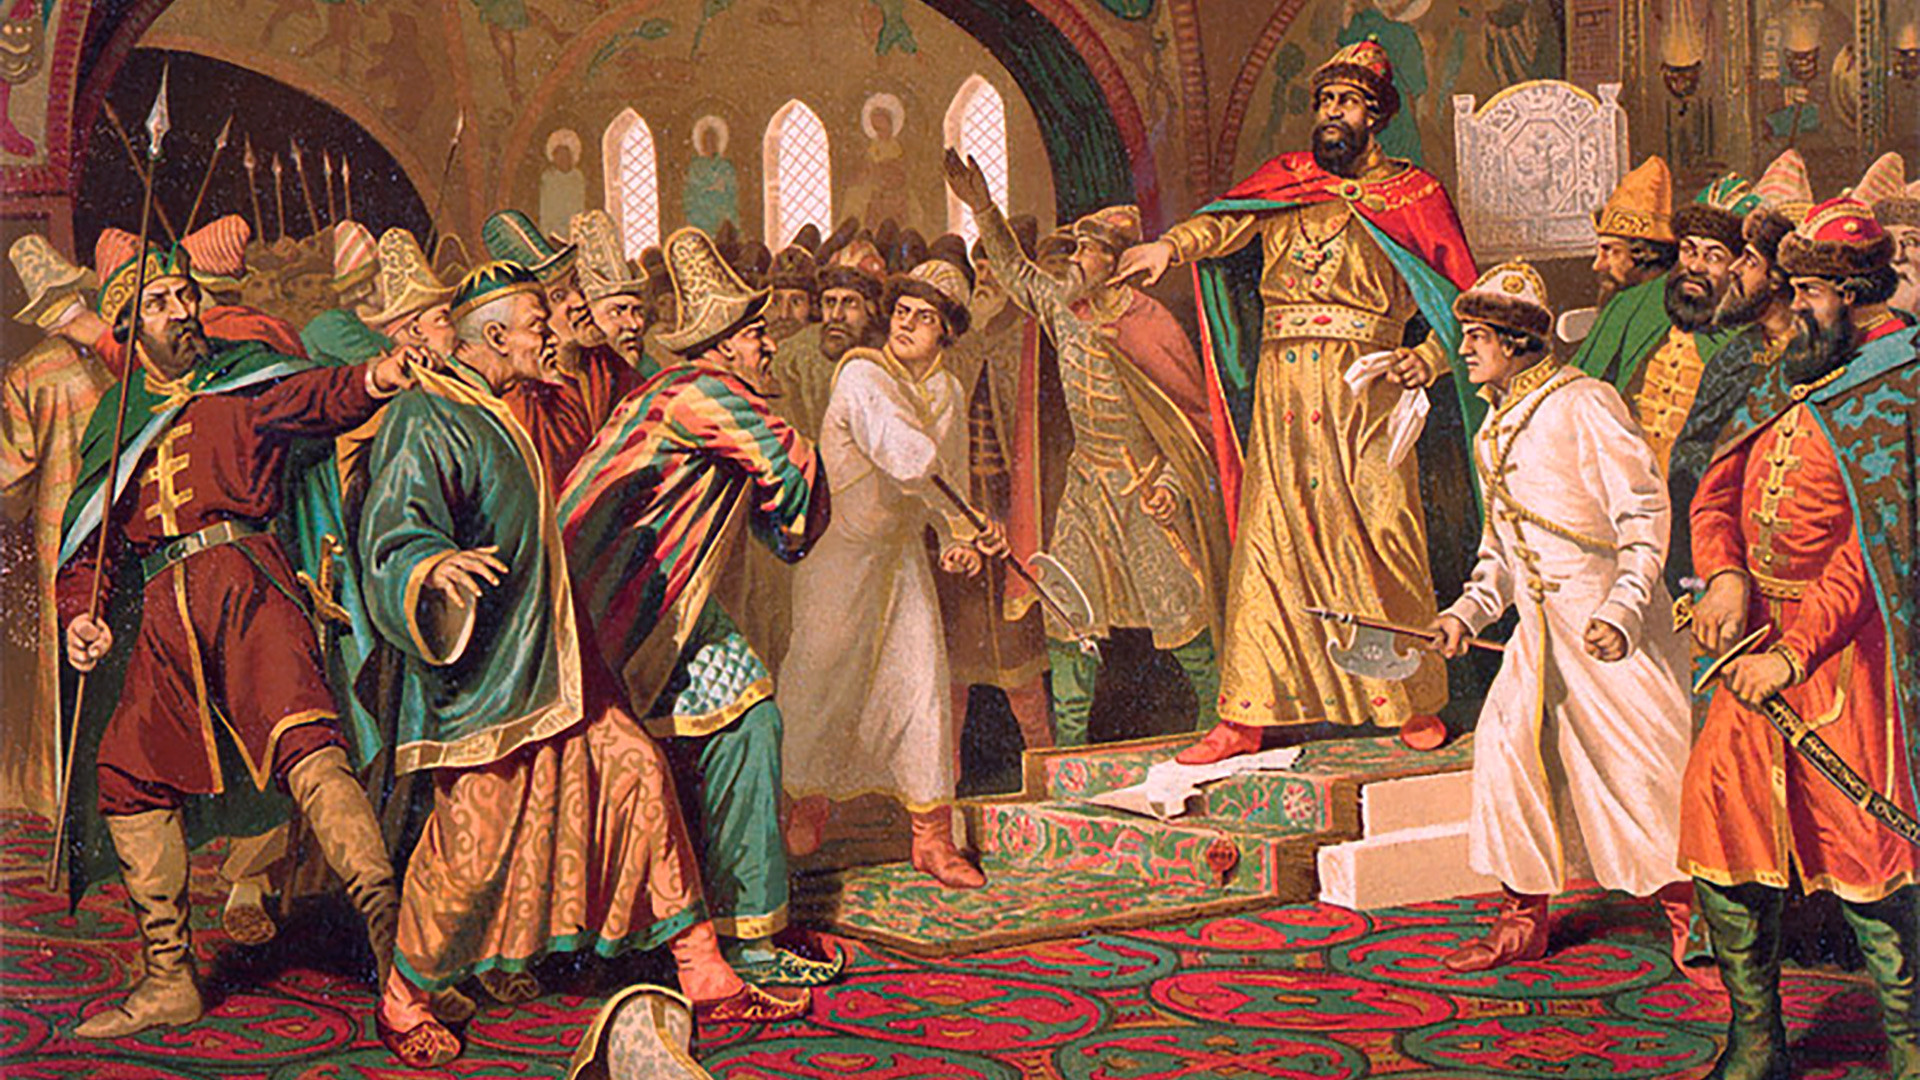 Ivan III tearing the khan's letter to pieces by Aleksey Kivshenko. According to the legend, Ivan tore apart the letter from Akhmat in which he asked for the tribute